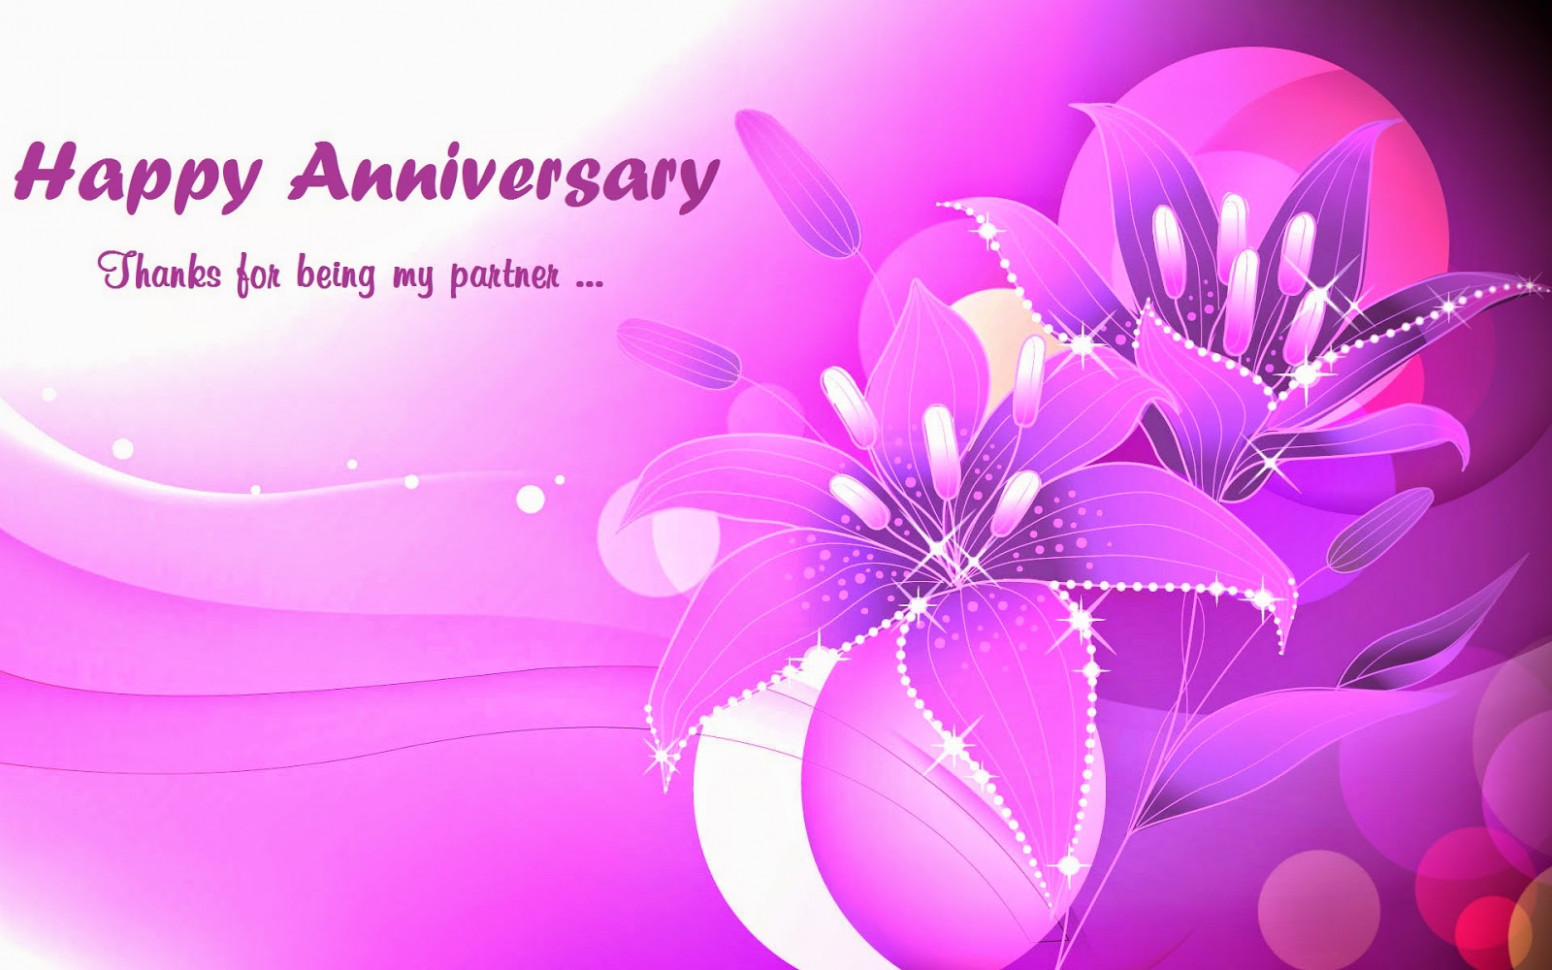 Happy Wedding Anniversary Wishes Images Cards Greetings ...